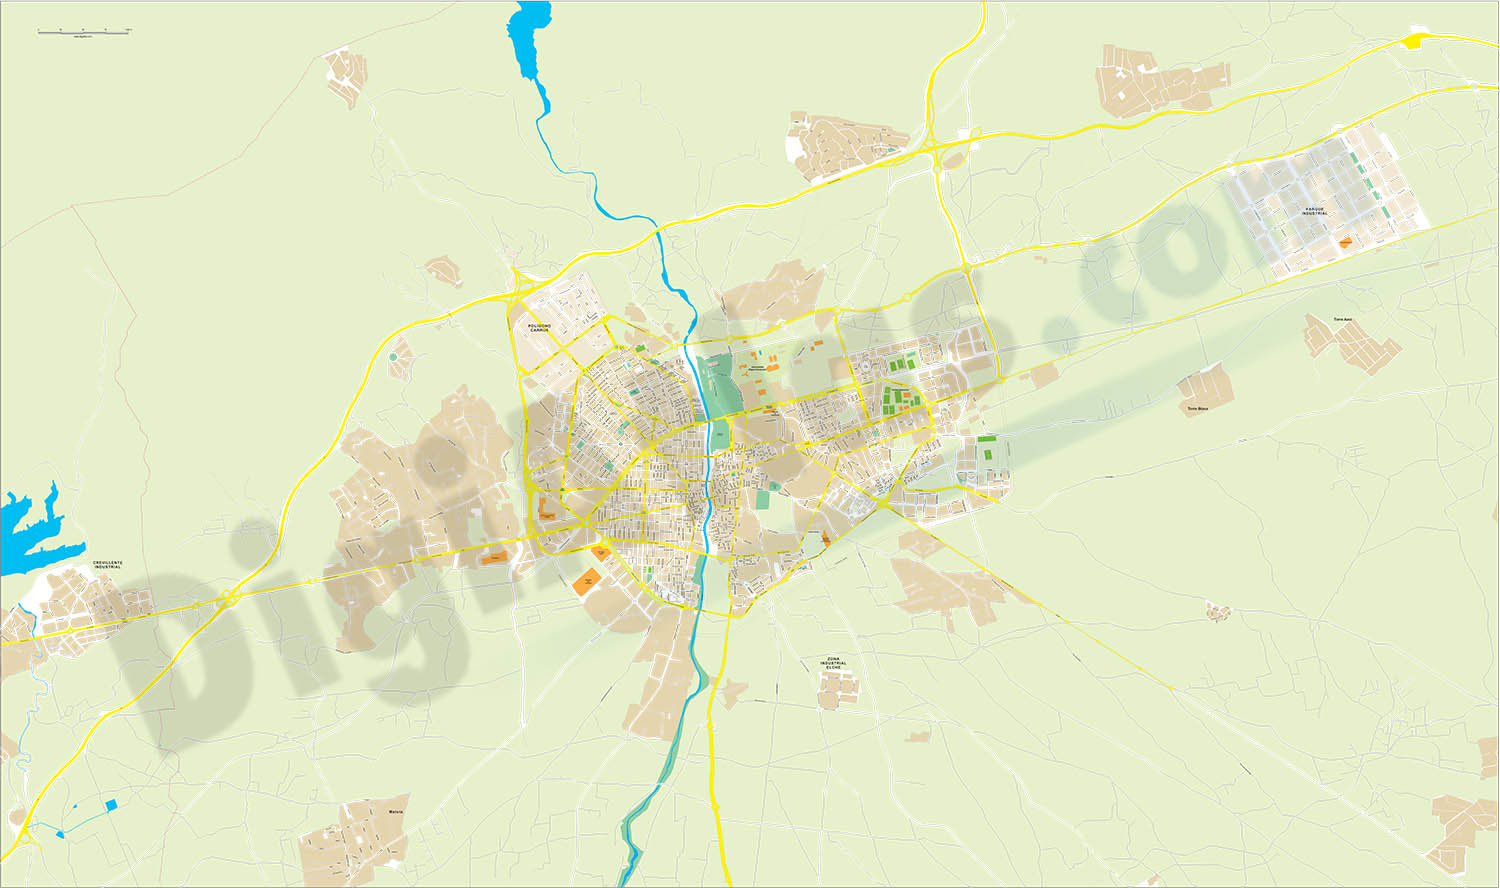 Elche-elx - city map and Industrial Estate